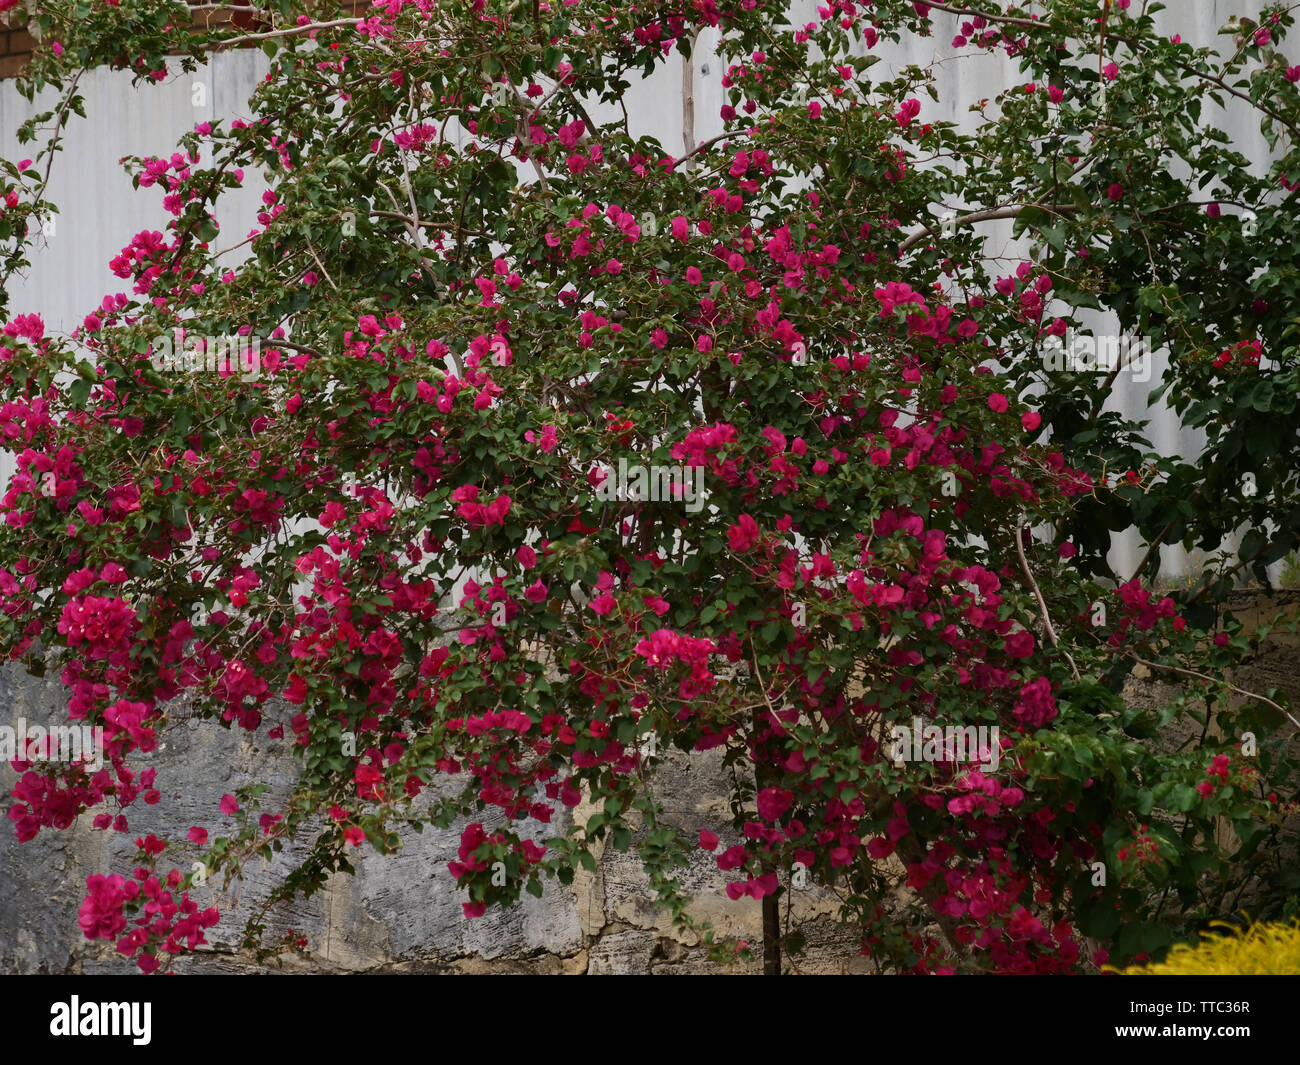 Bougainvillea is a tropical and subtropical garden shrub or houseplant with beautiful flowers flowering over a long period of the season. - Stock Image